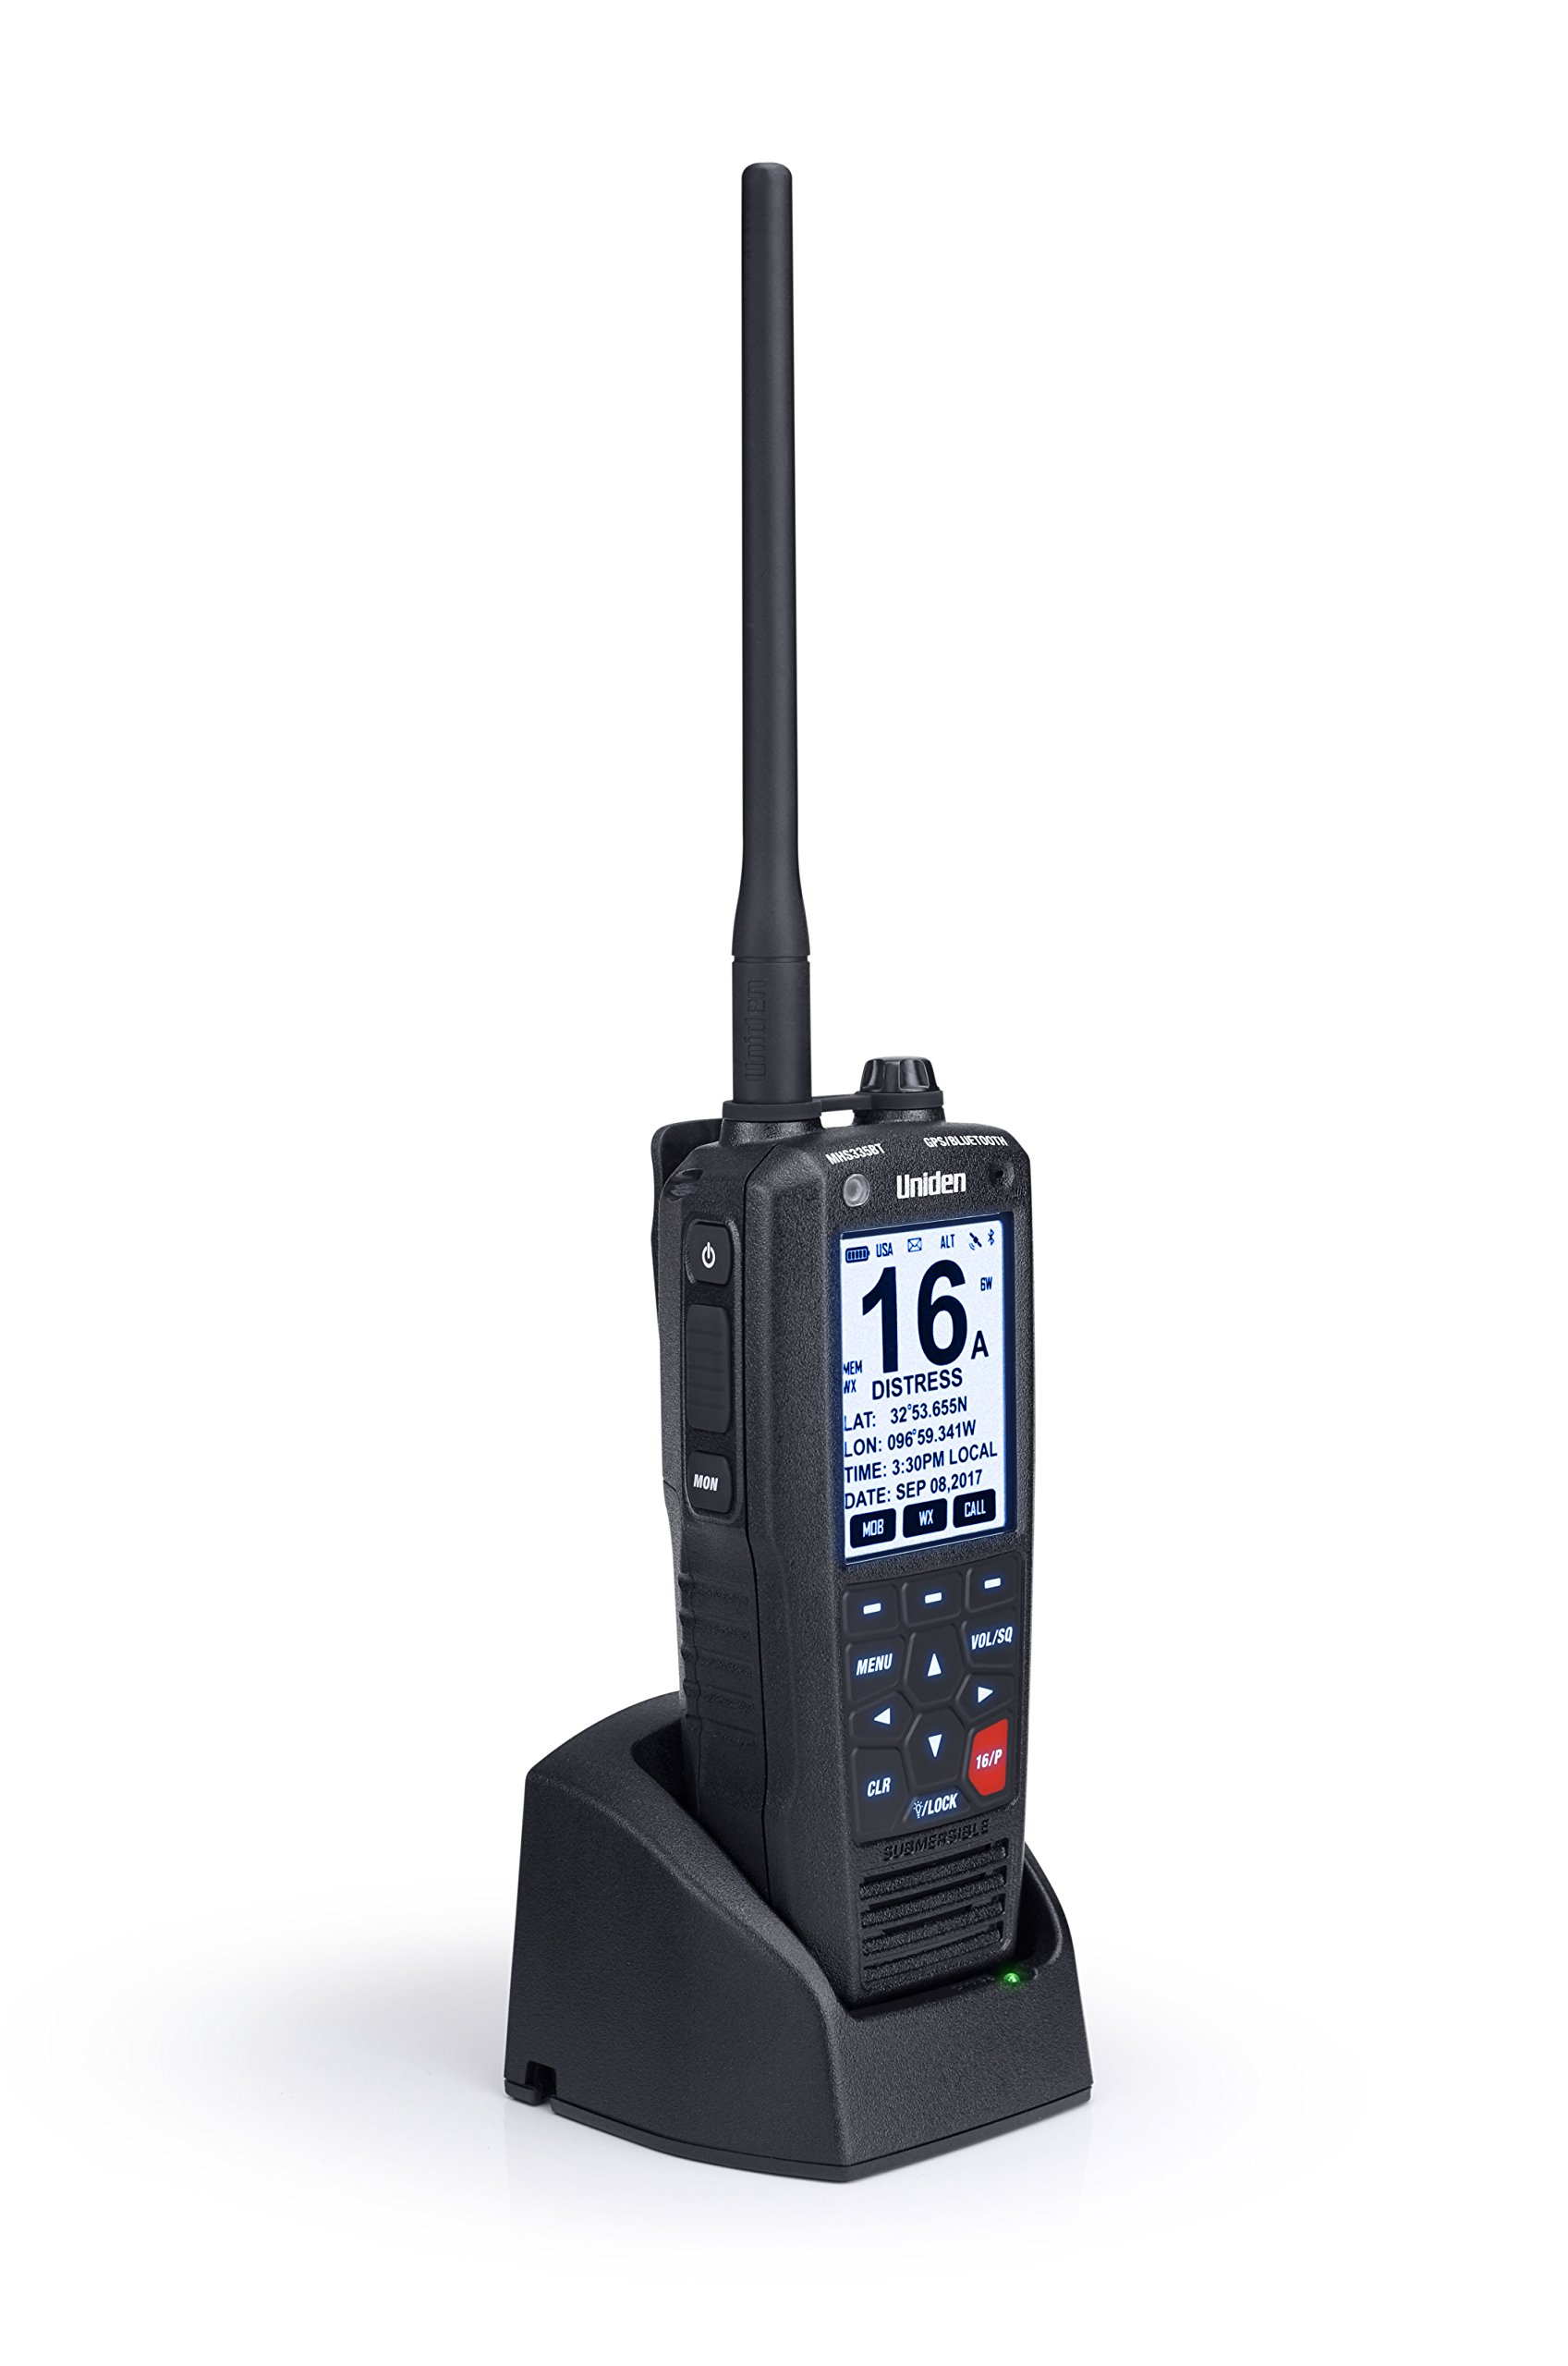 Uniden MHS335BT 6W Class D Floating Handheld VHF Marine Radio with Bluetooth, Text Message Directly to Other VHF Text Message Capable Radios, IPX8 Submersible Design by Uniden (Image #2)